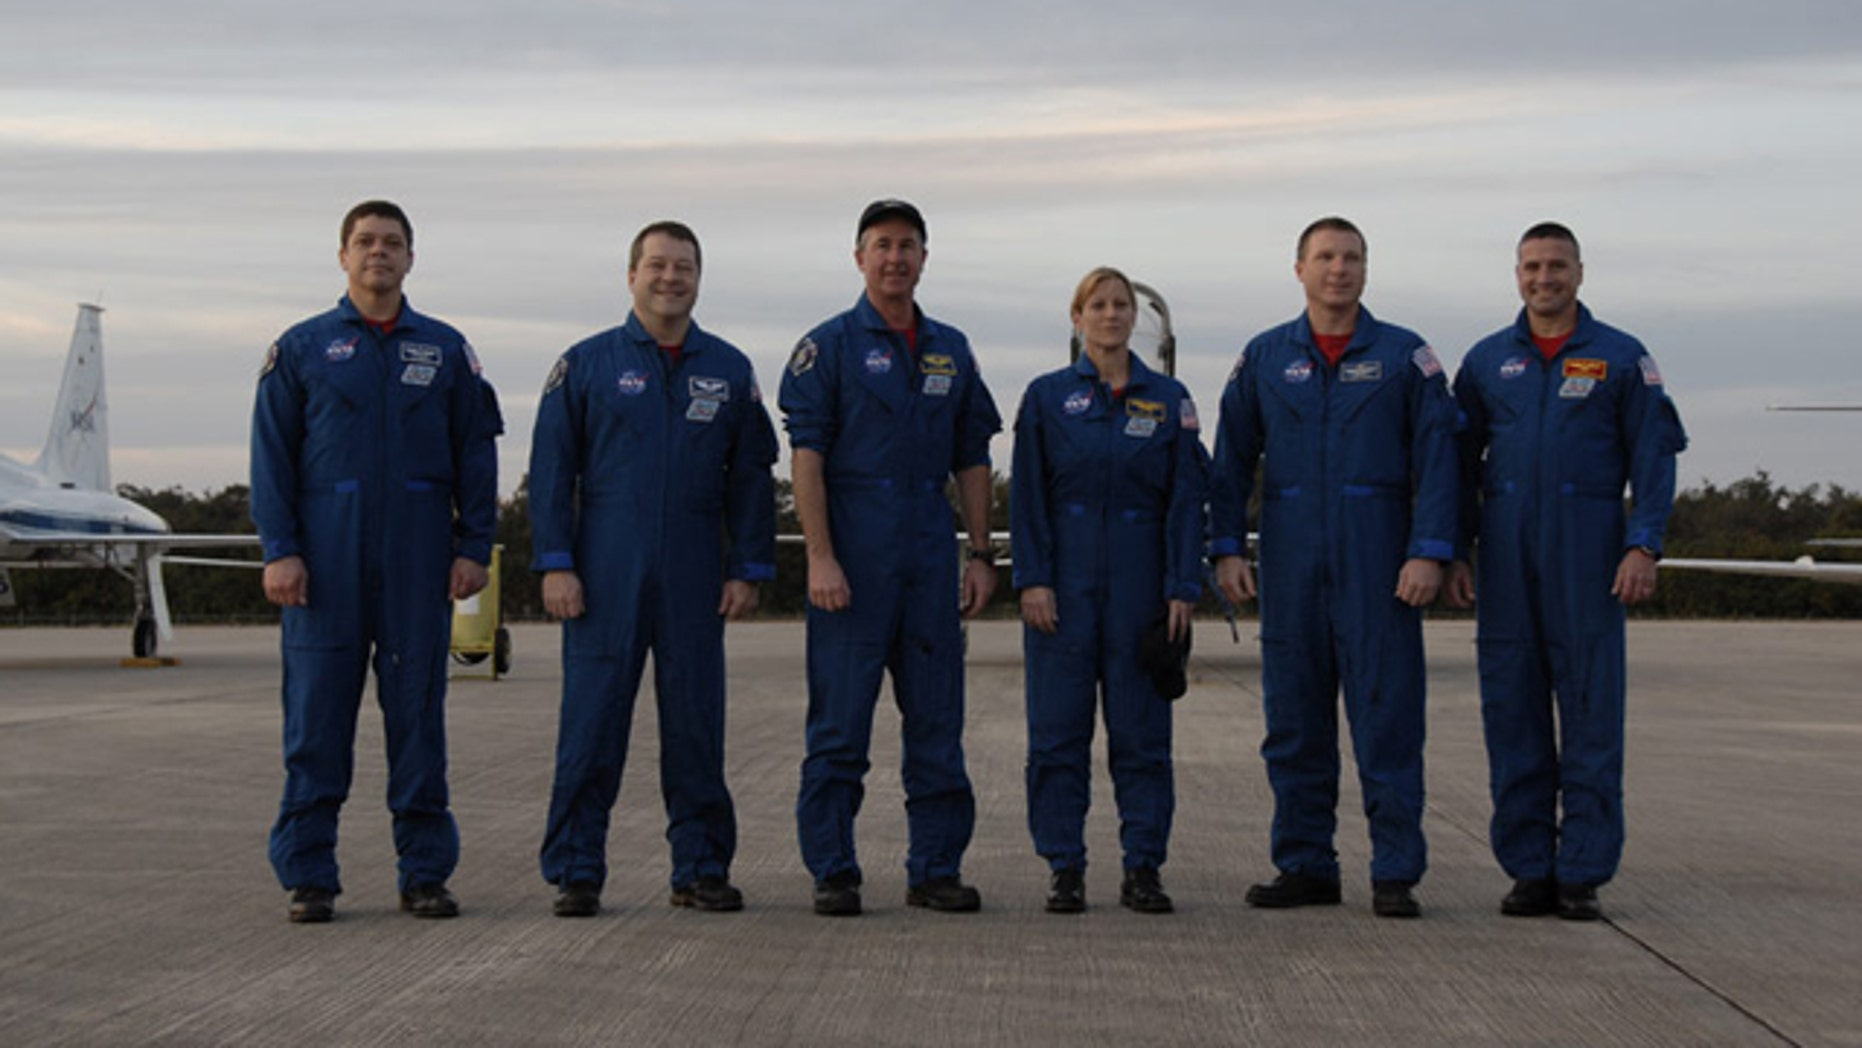 The six-astronaut crew of shuttle Endeavour's STS-130 mission pose for a photo at NASA's Shuttle Landing Facility after arriving Jan. 18, 2010 for prelaunch training. Liftoff is set for Feb. 7.